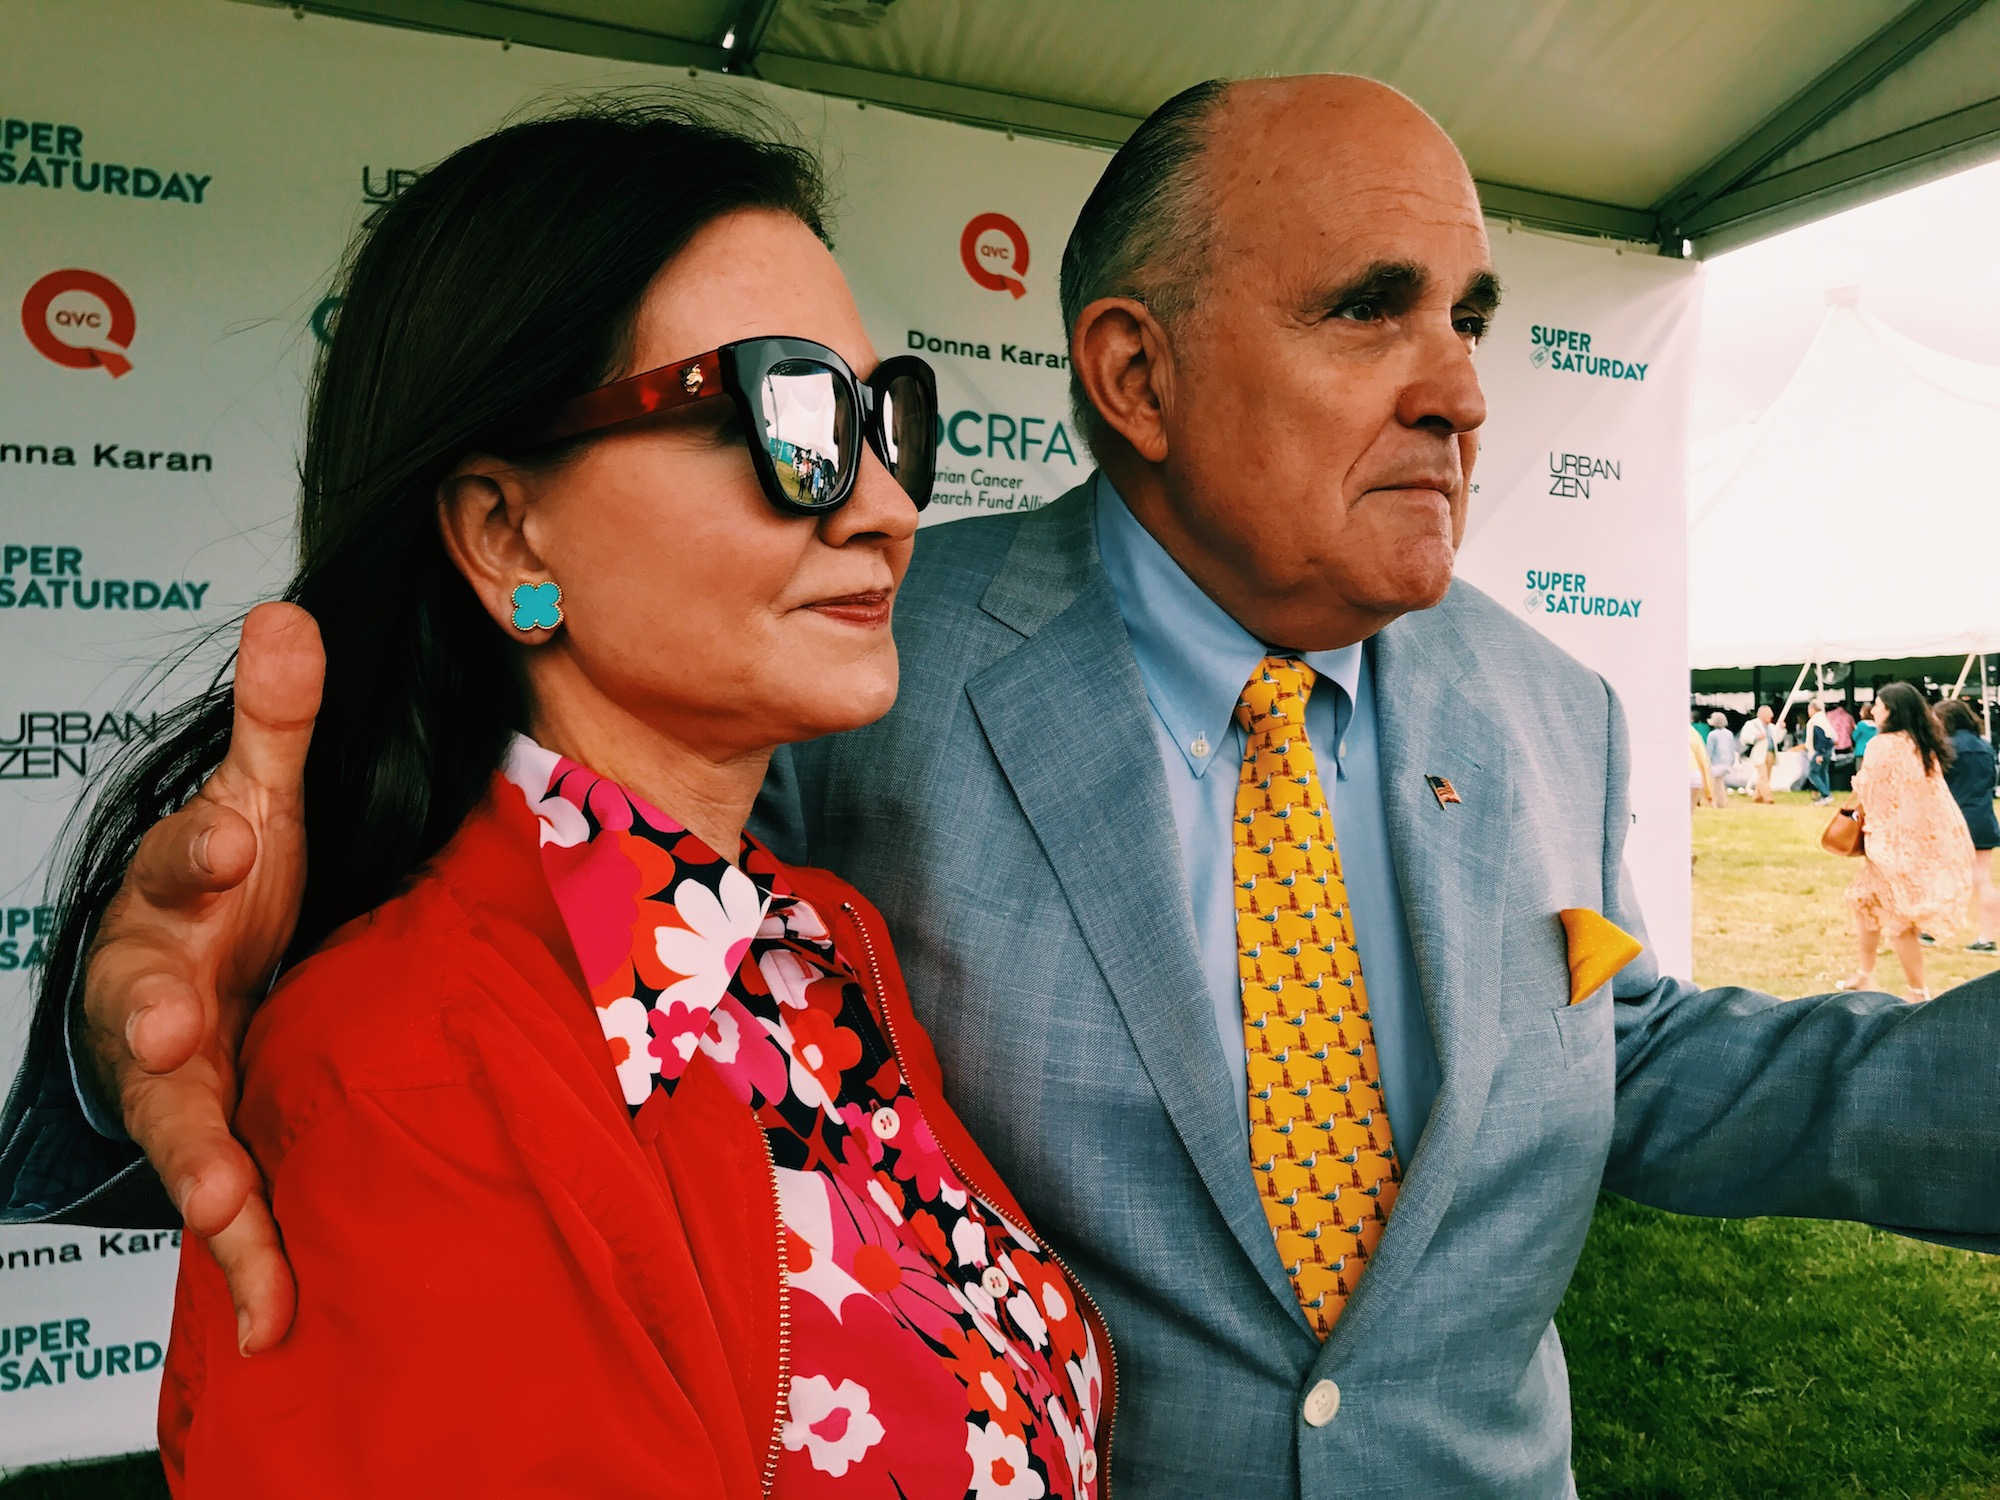 Rudy Giuliani and his wife. Image: gianna barberia